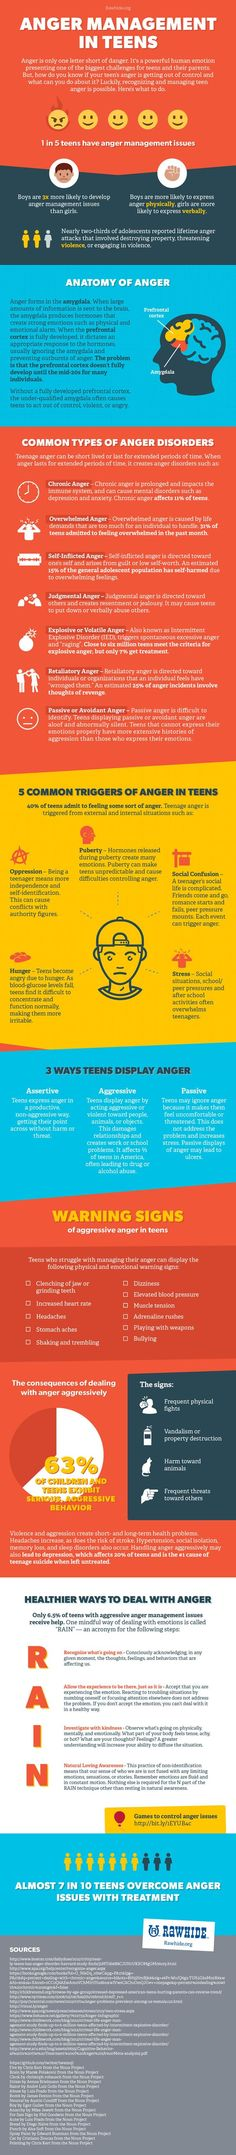 Boys are three times more likely to develop anger management issues. For more information check out our Anger Management Infogrpahic.: